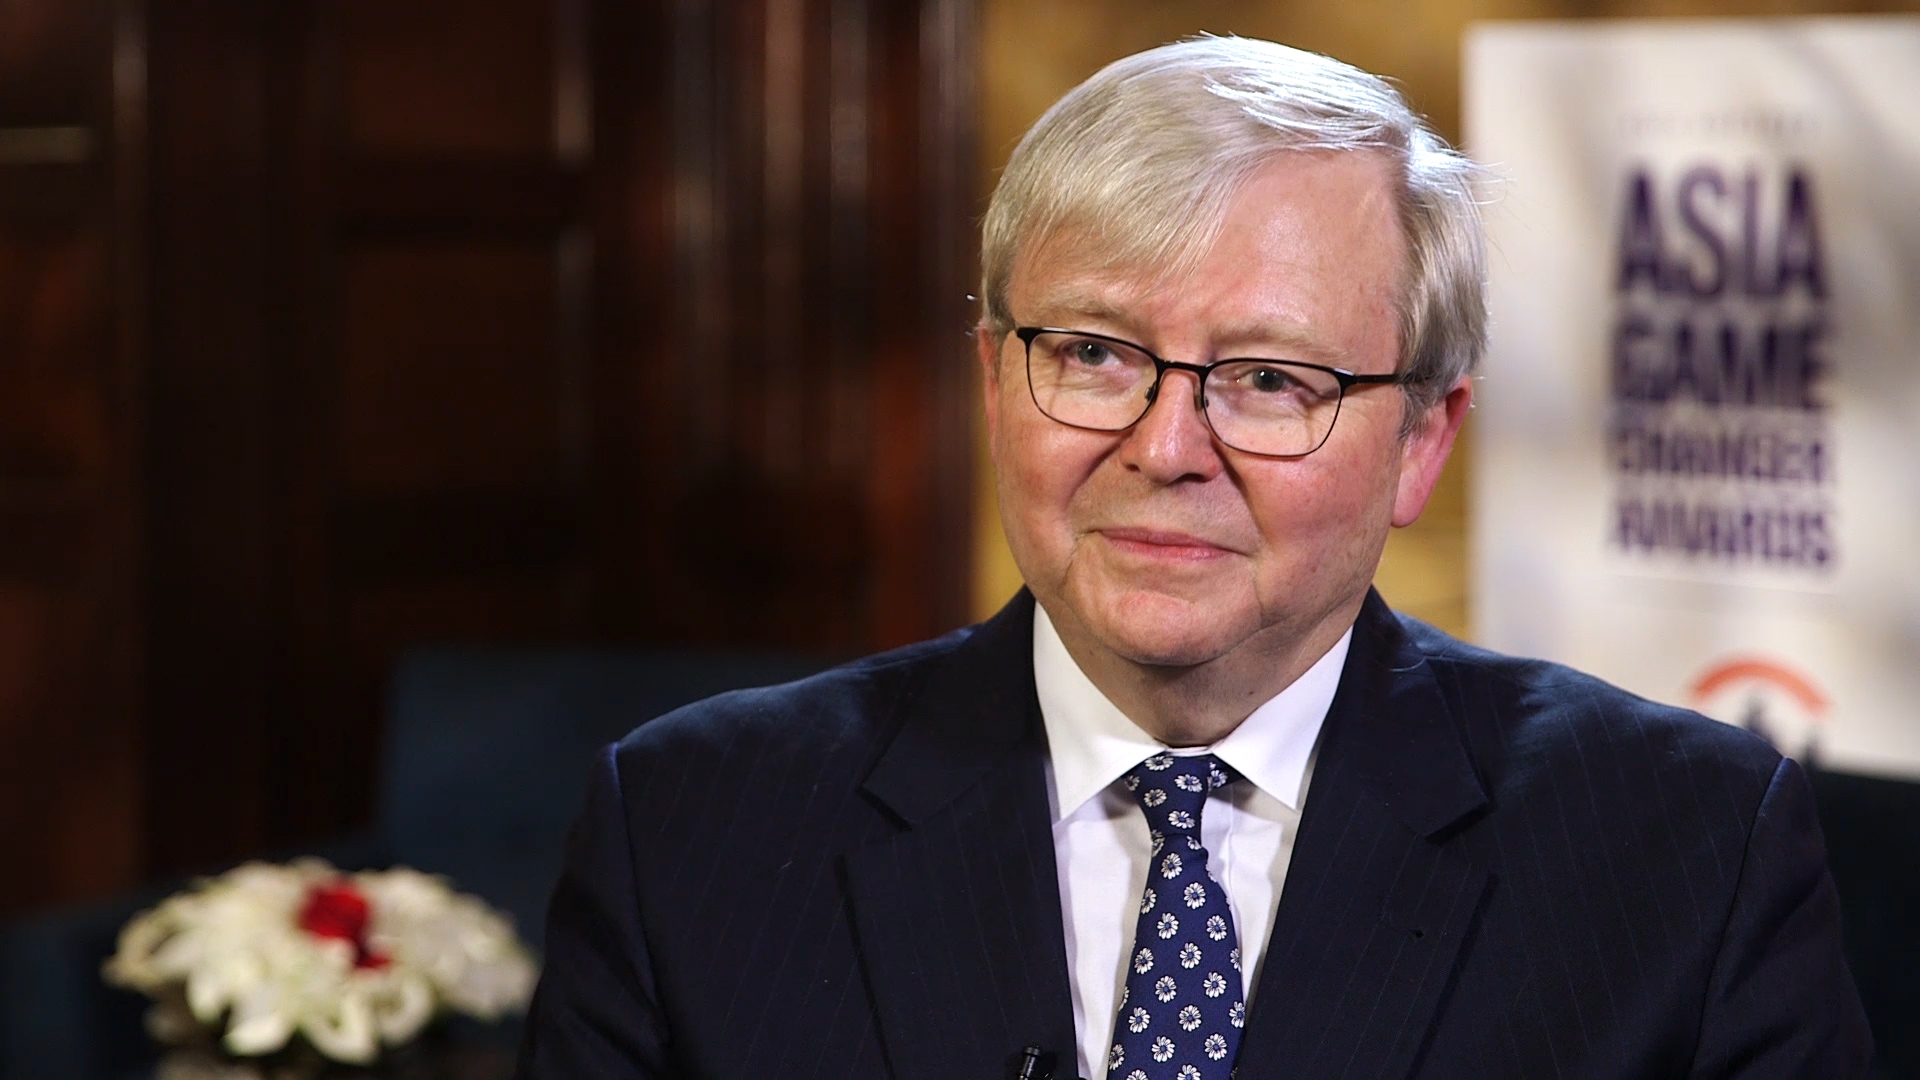 Kevin Rudd Asia Game Changer Awards Promote Politics Of Hope Asia Society